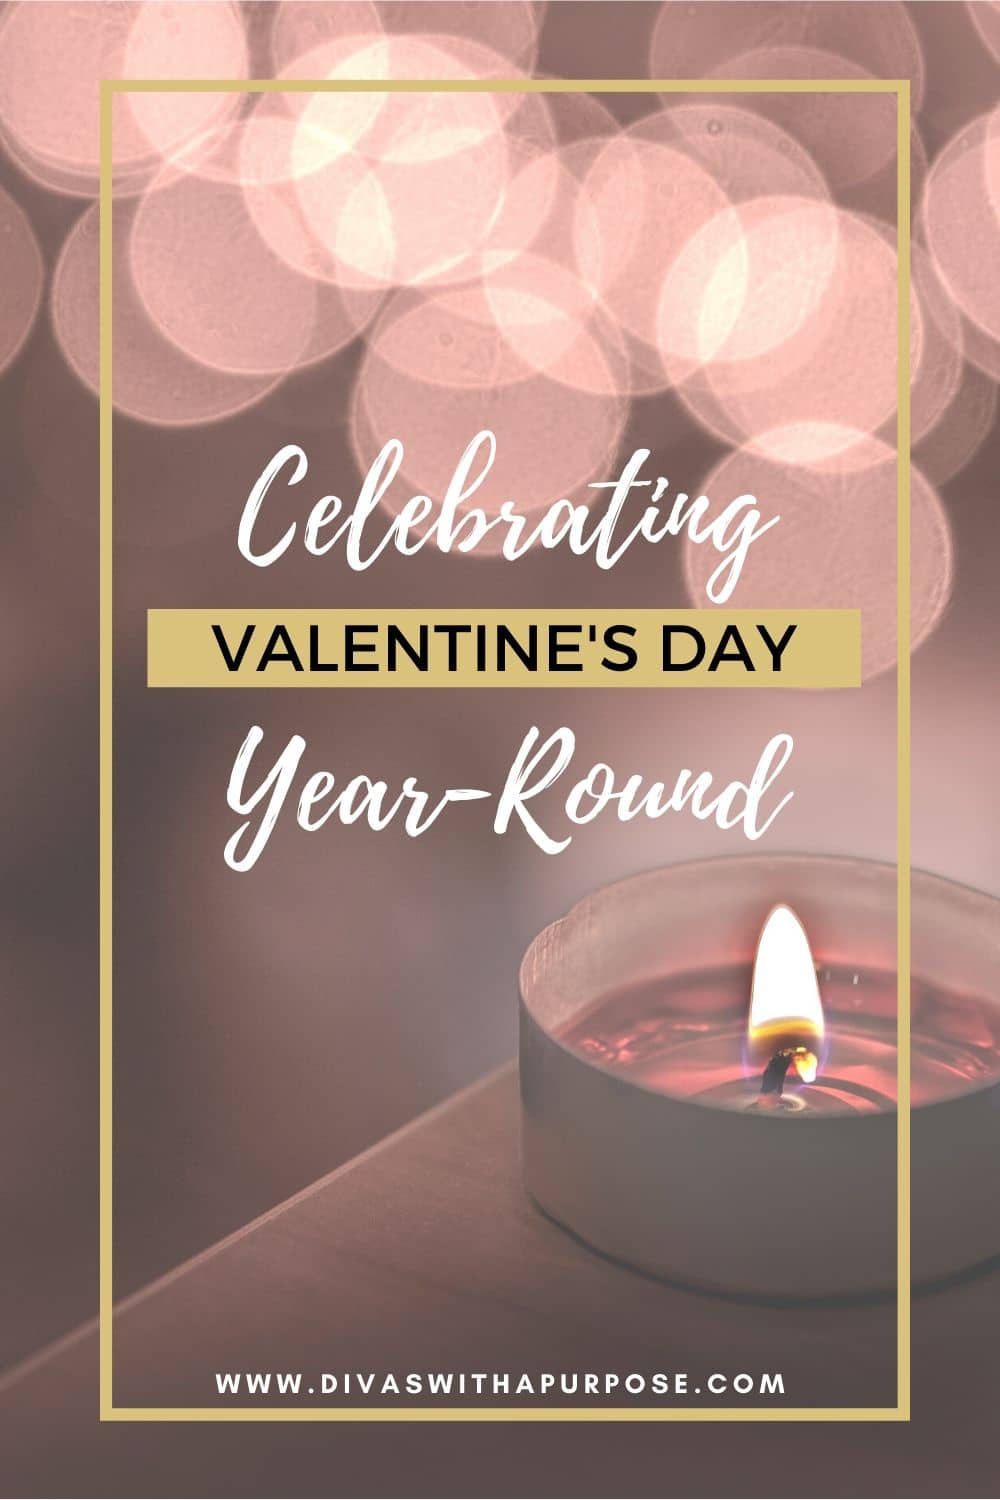 Simple ways to start celebrating Valentine's Day year-round. How to keep the love, fun and spontaneity of the day alive and a part of your daily habits as a couple.